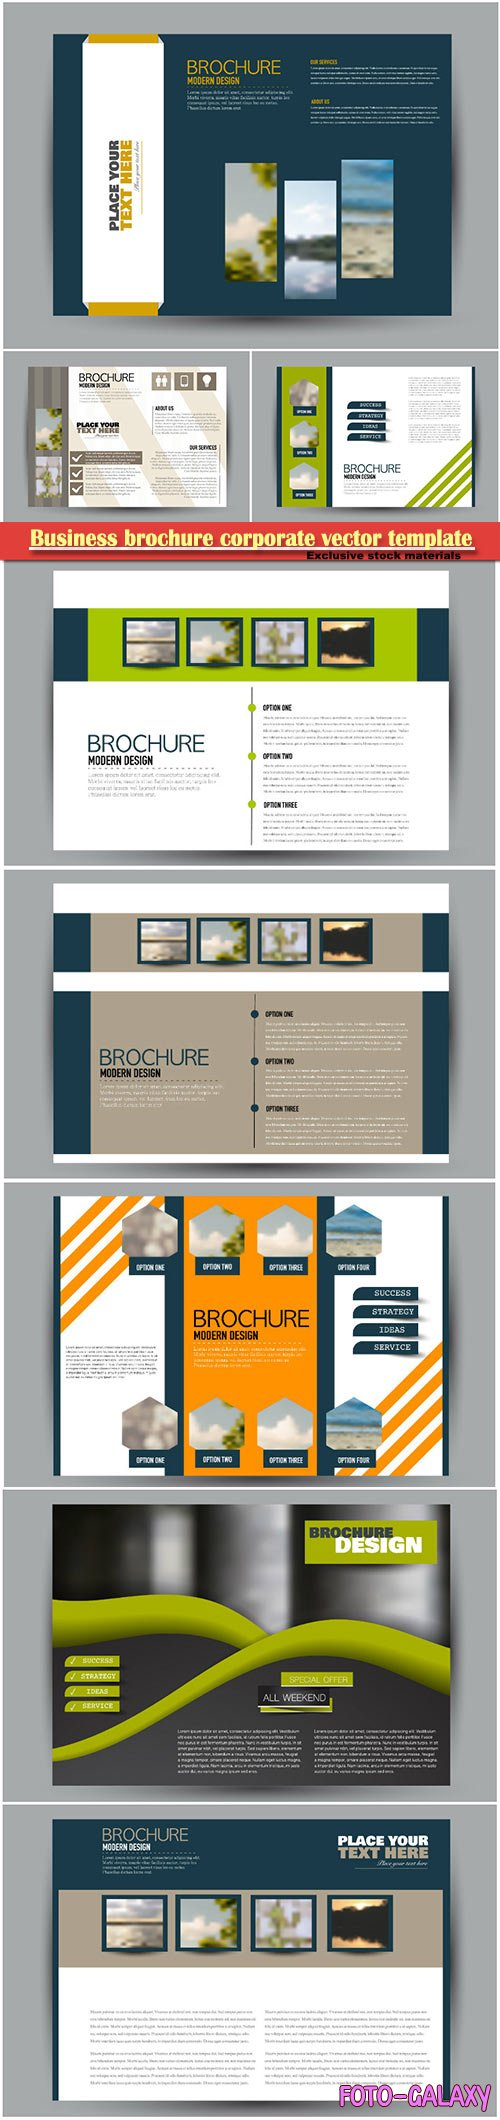 Business brochure corporate vector template, magazine flyer mockup # 17